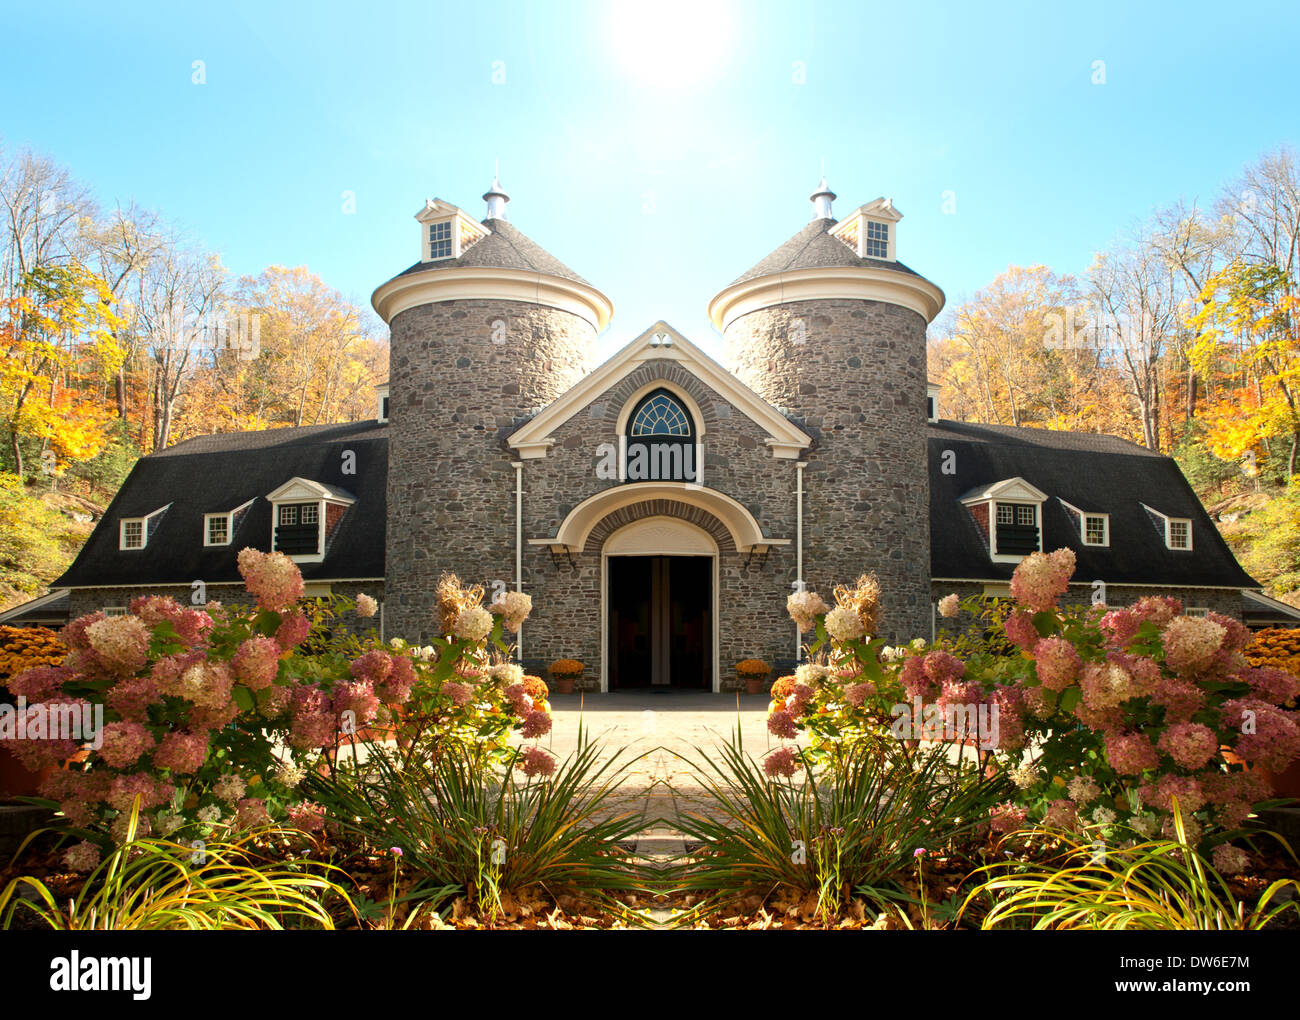 beautiful house with turrets in daylight - Stock Image